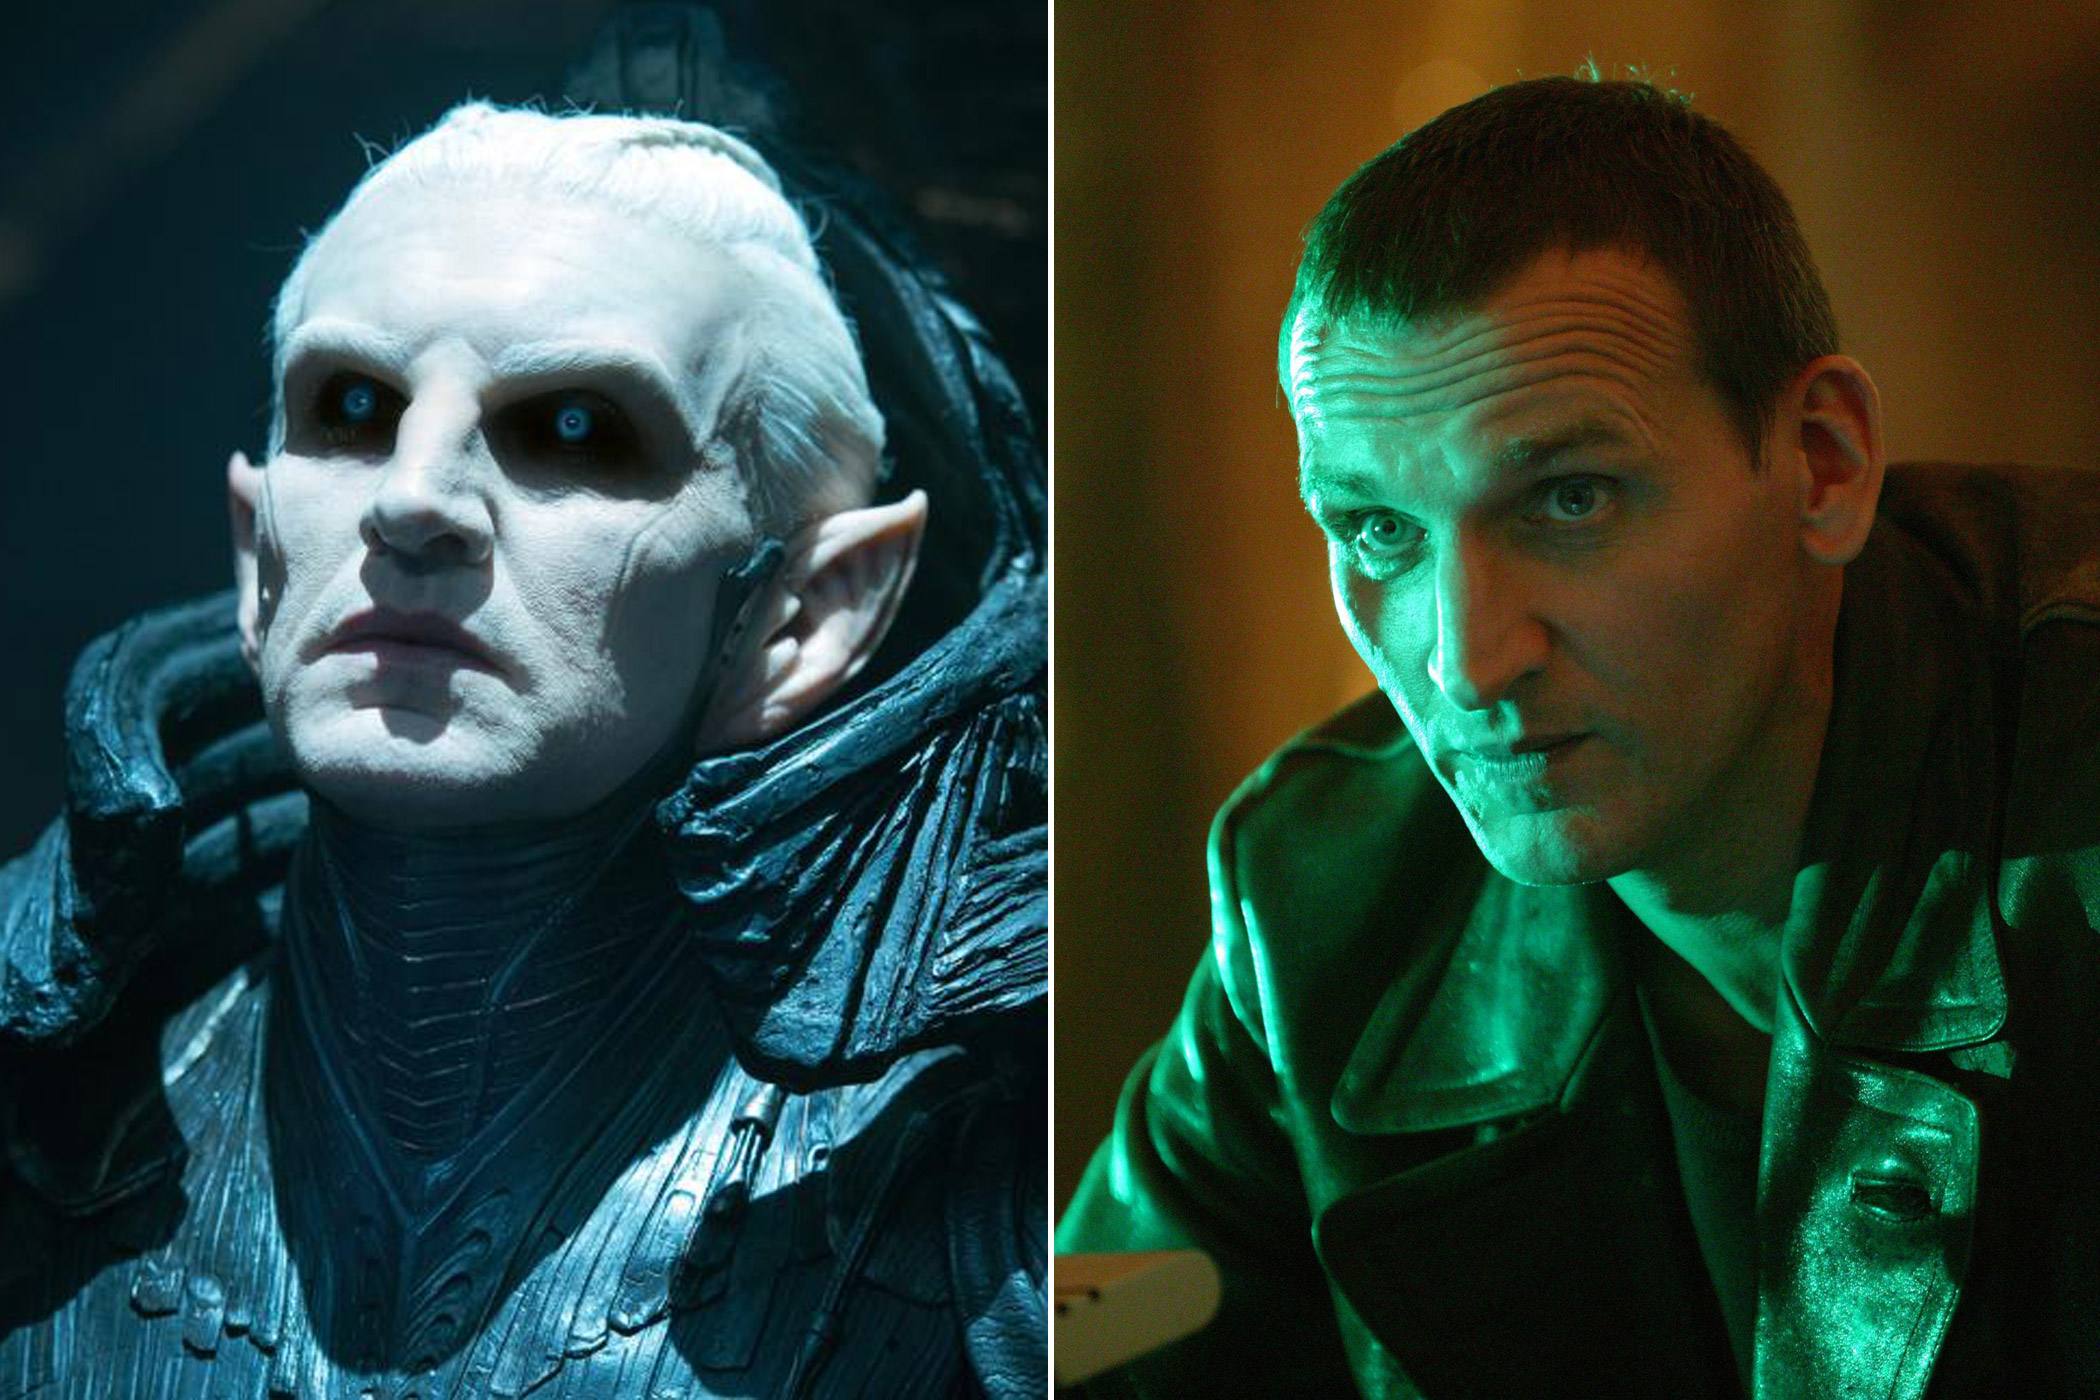 Christopher Eccleston as Malekith in <i>Thor: The Dark World</i> and the Ninth Doctor in <i>Doctor Who</i>